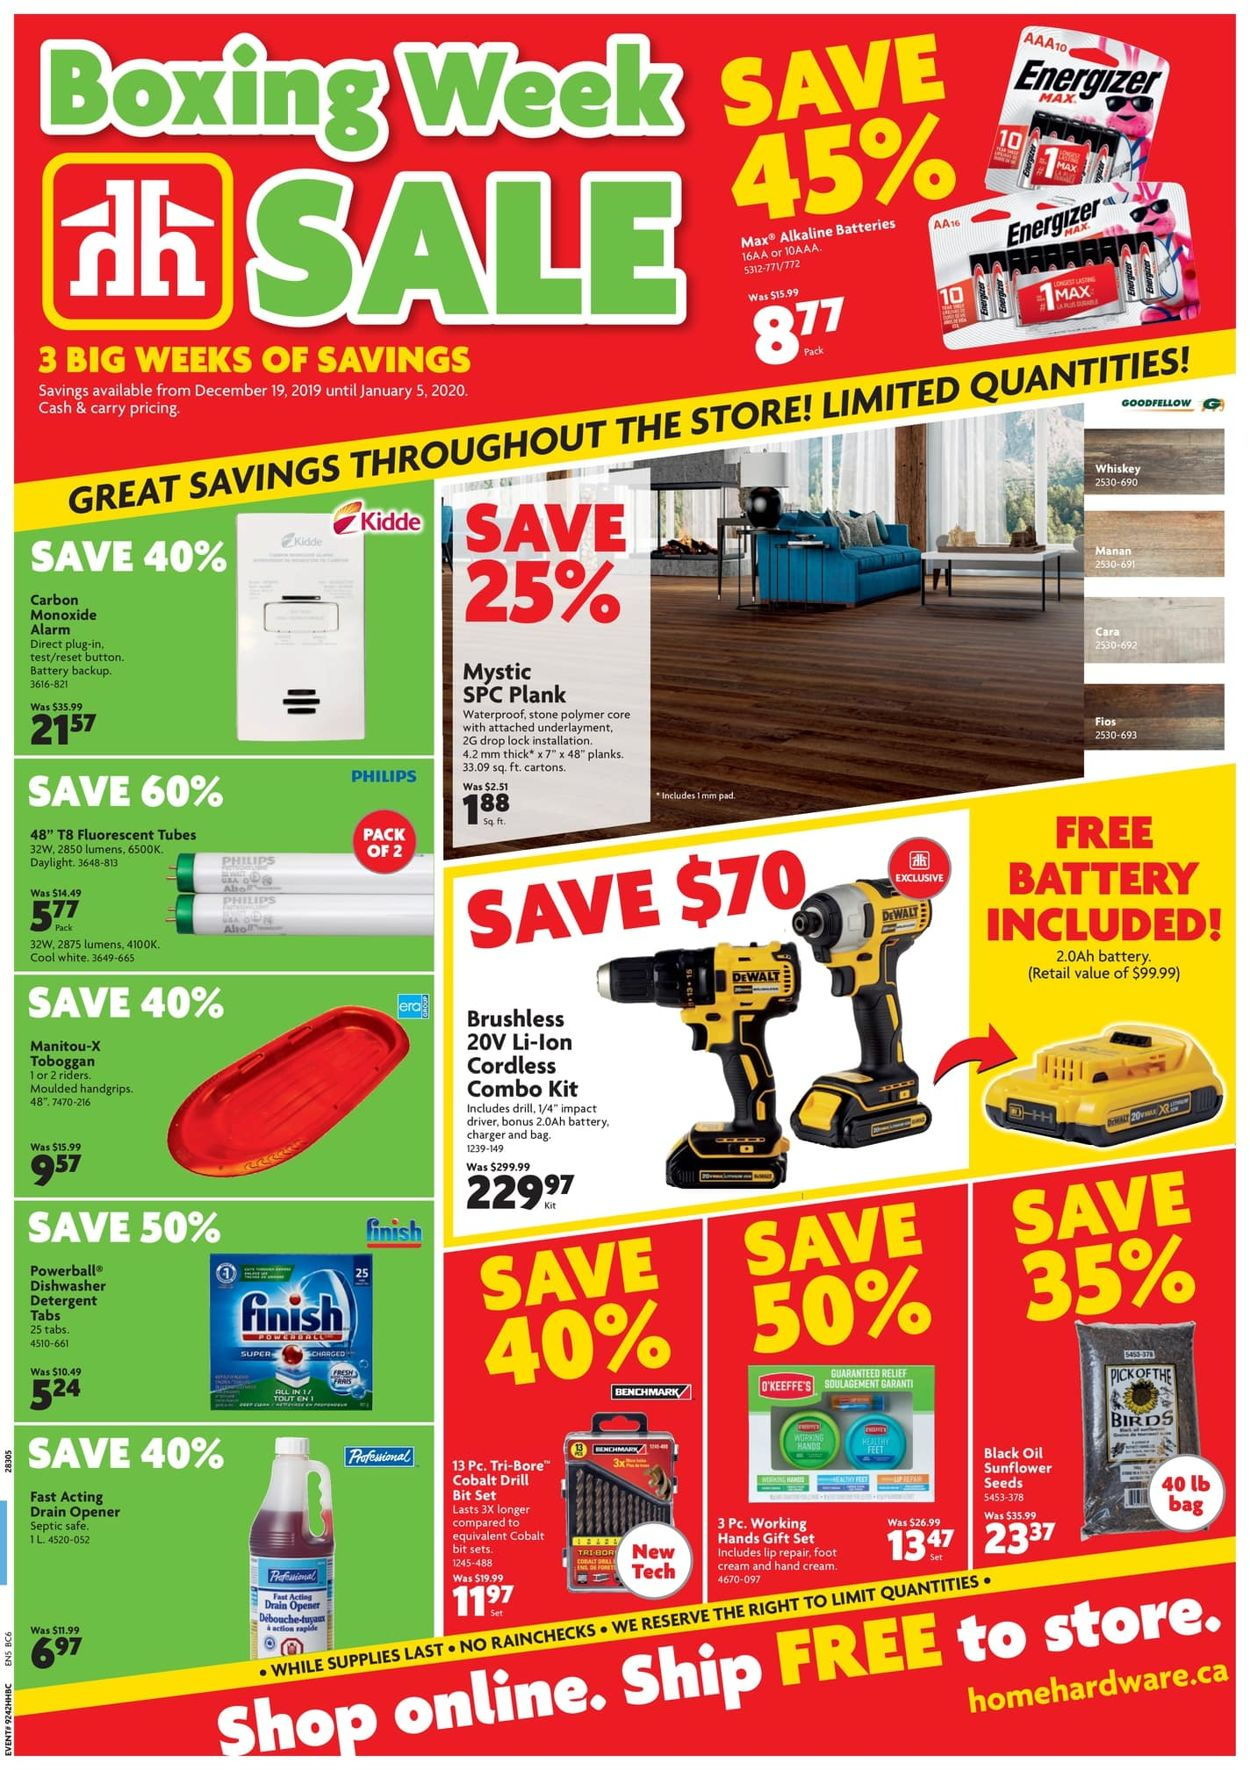 Home Hardware - Boxing Week 2019 Sale Flyer - 12/19-01/05/2020